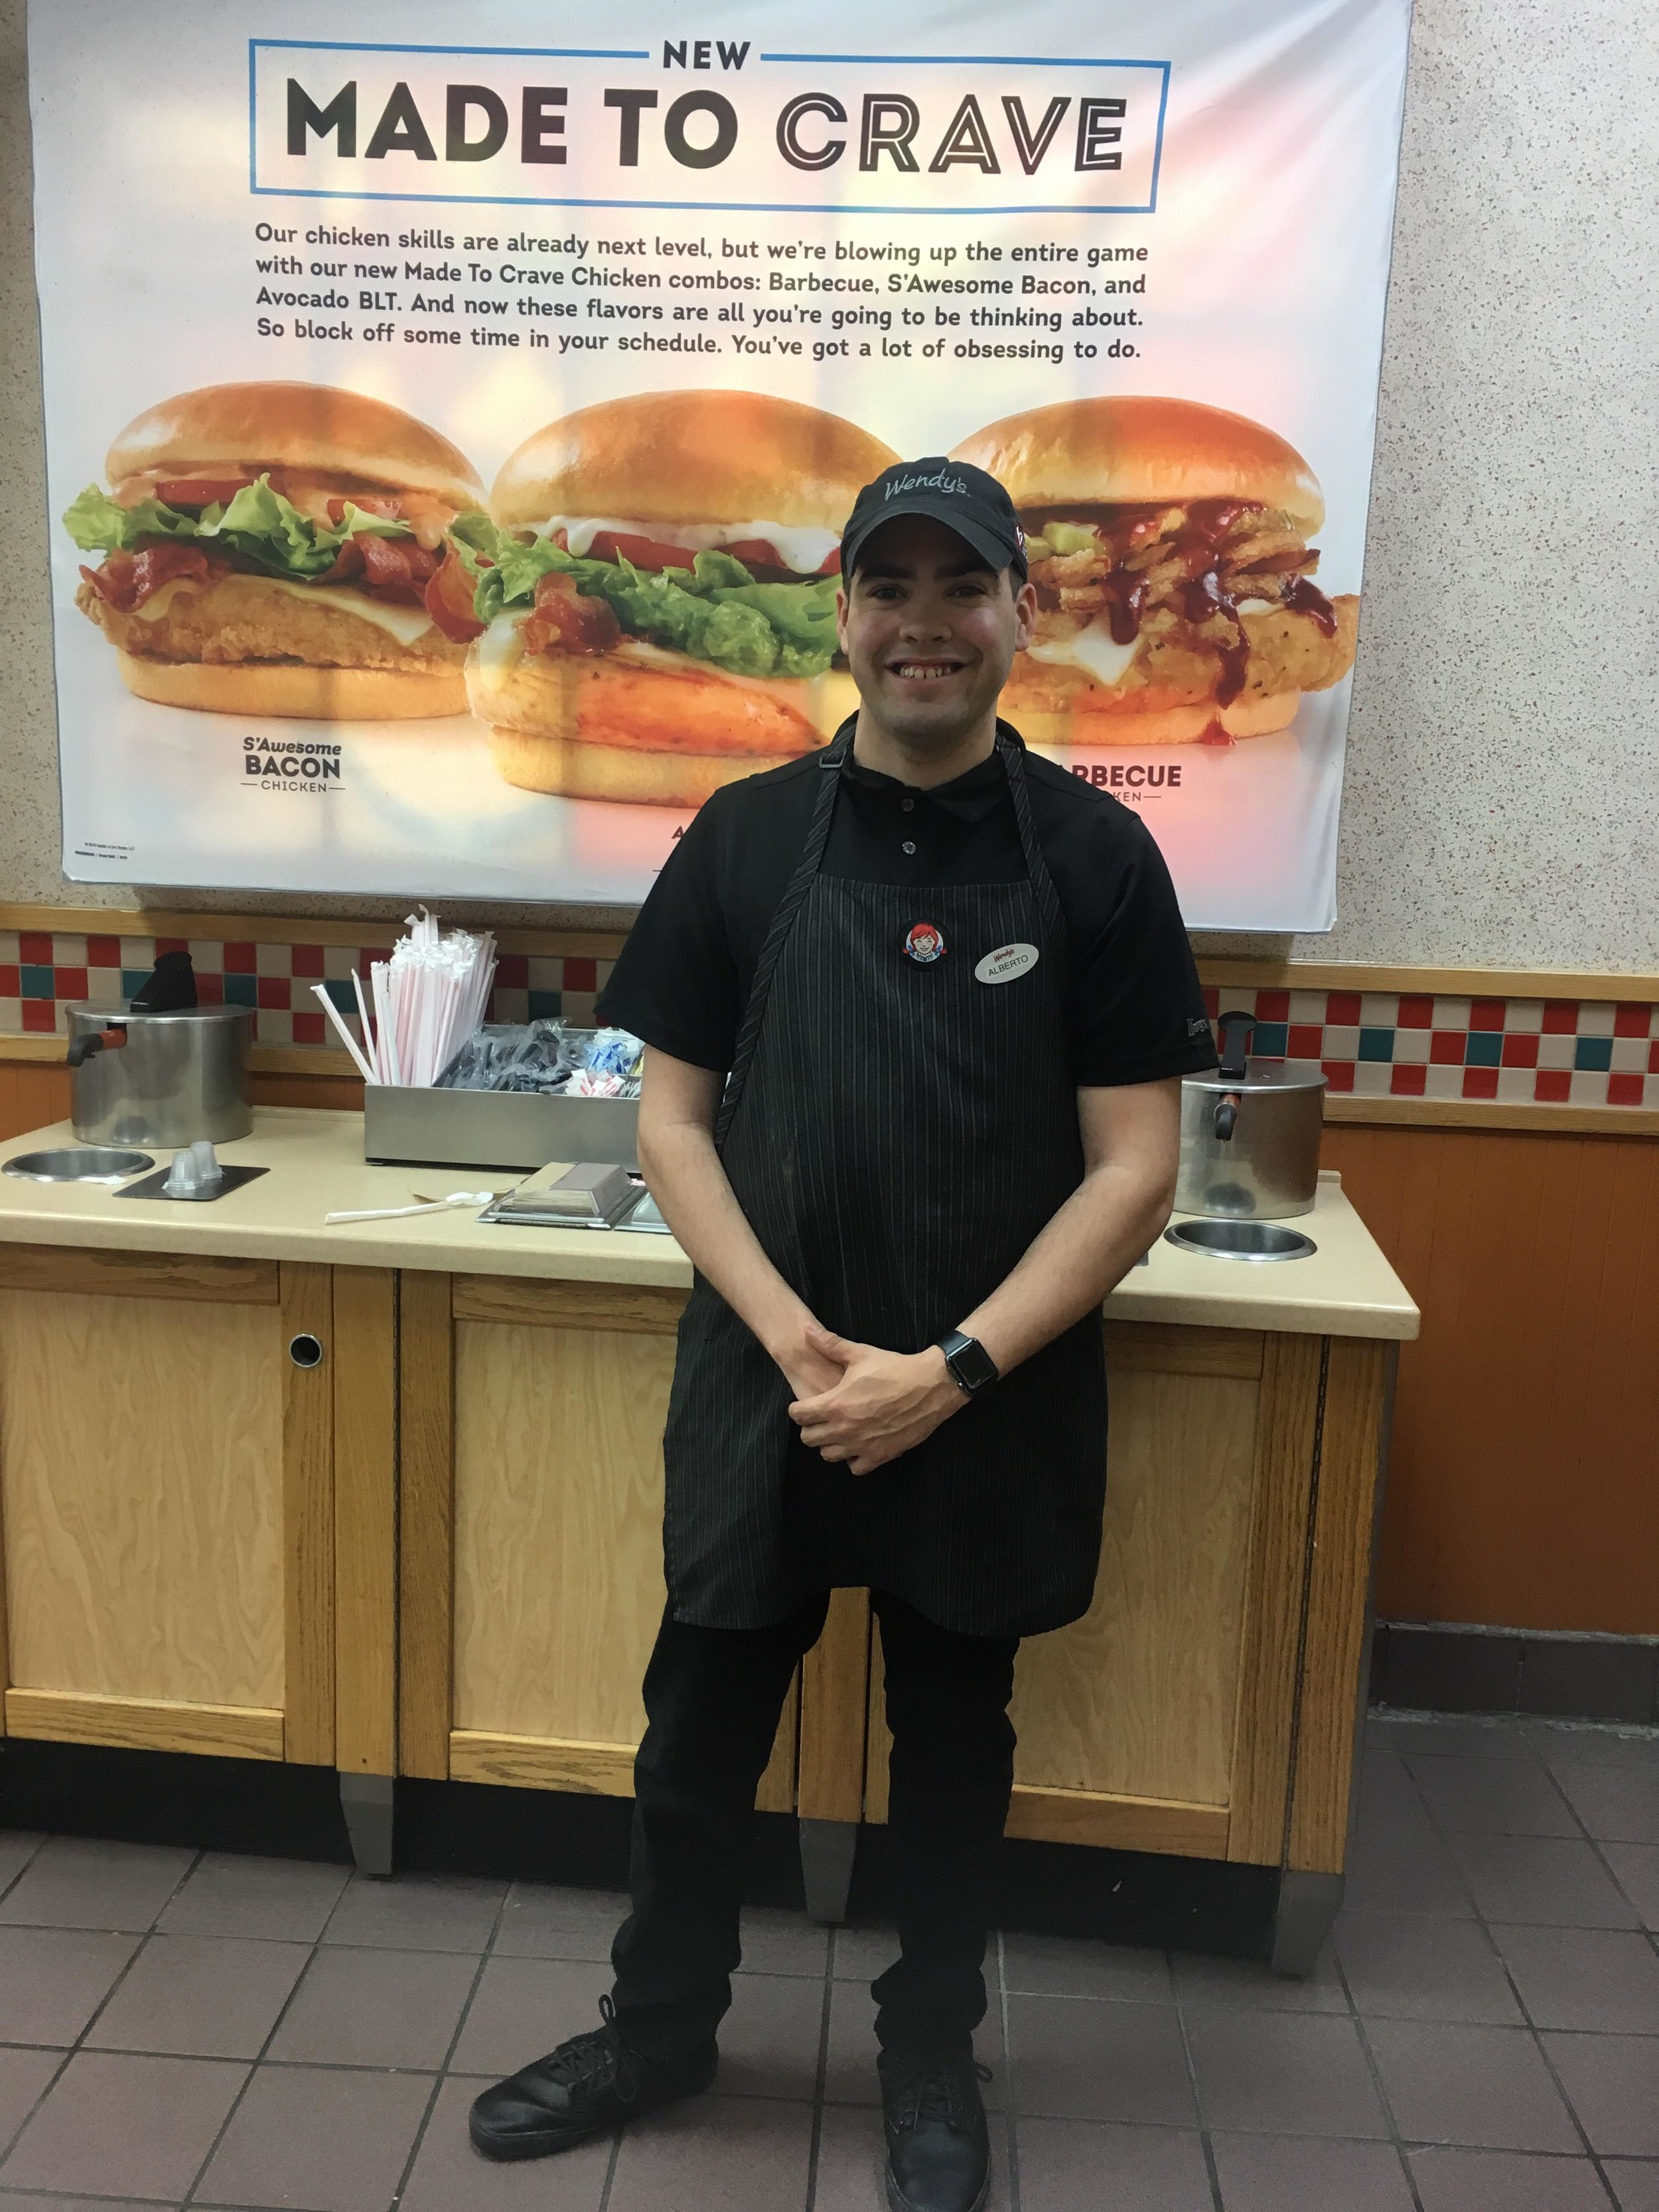 Alberto D. - Tell us about your job: I work for Wendy's in Woodbridge, New Jersey. I clean trays, take out garbage, replenish ketchup, straws, salt + pepper shakers and sugar. I do a very good job and customers get to know me and talk to me.How long have you worked there? Since November, 2018.What is your favorite part about working at Wendy's? I love talking to the customers and employees about sports. My old teachers run into me at my job and tell me they're proud I'm working here.Can you tell us about your experience working at Inroads? They treat me very nice and I'm happy they helped me get a job.What do you like to do for fun? I like to listen to music, watch soccer, football, basketball and take lots of pictures.